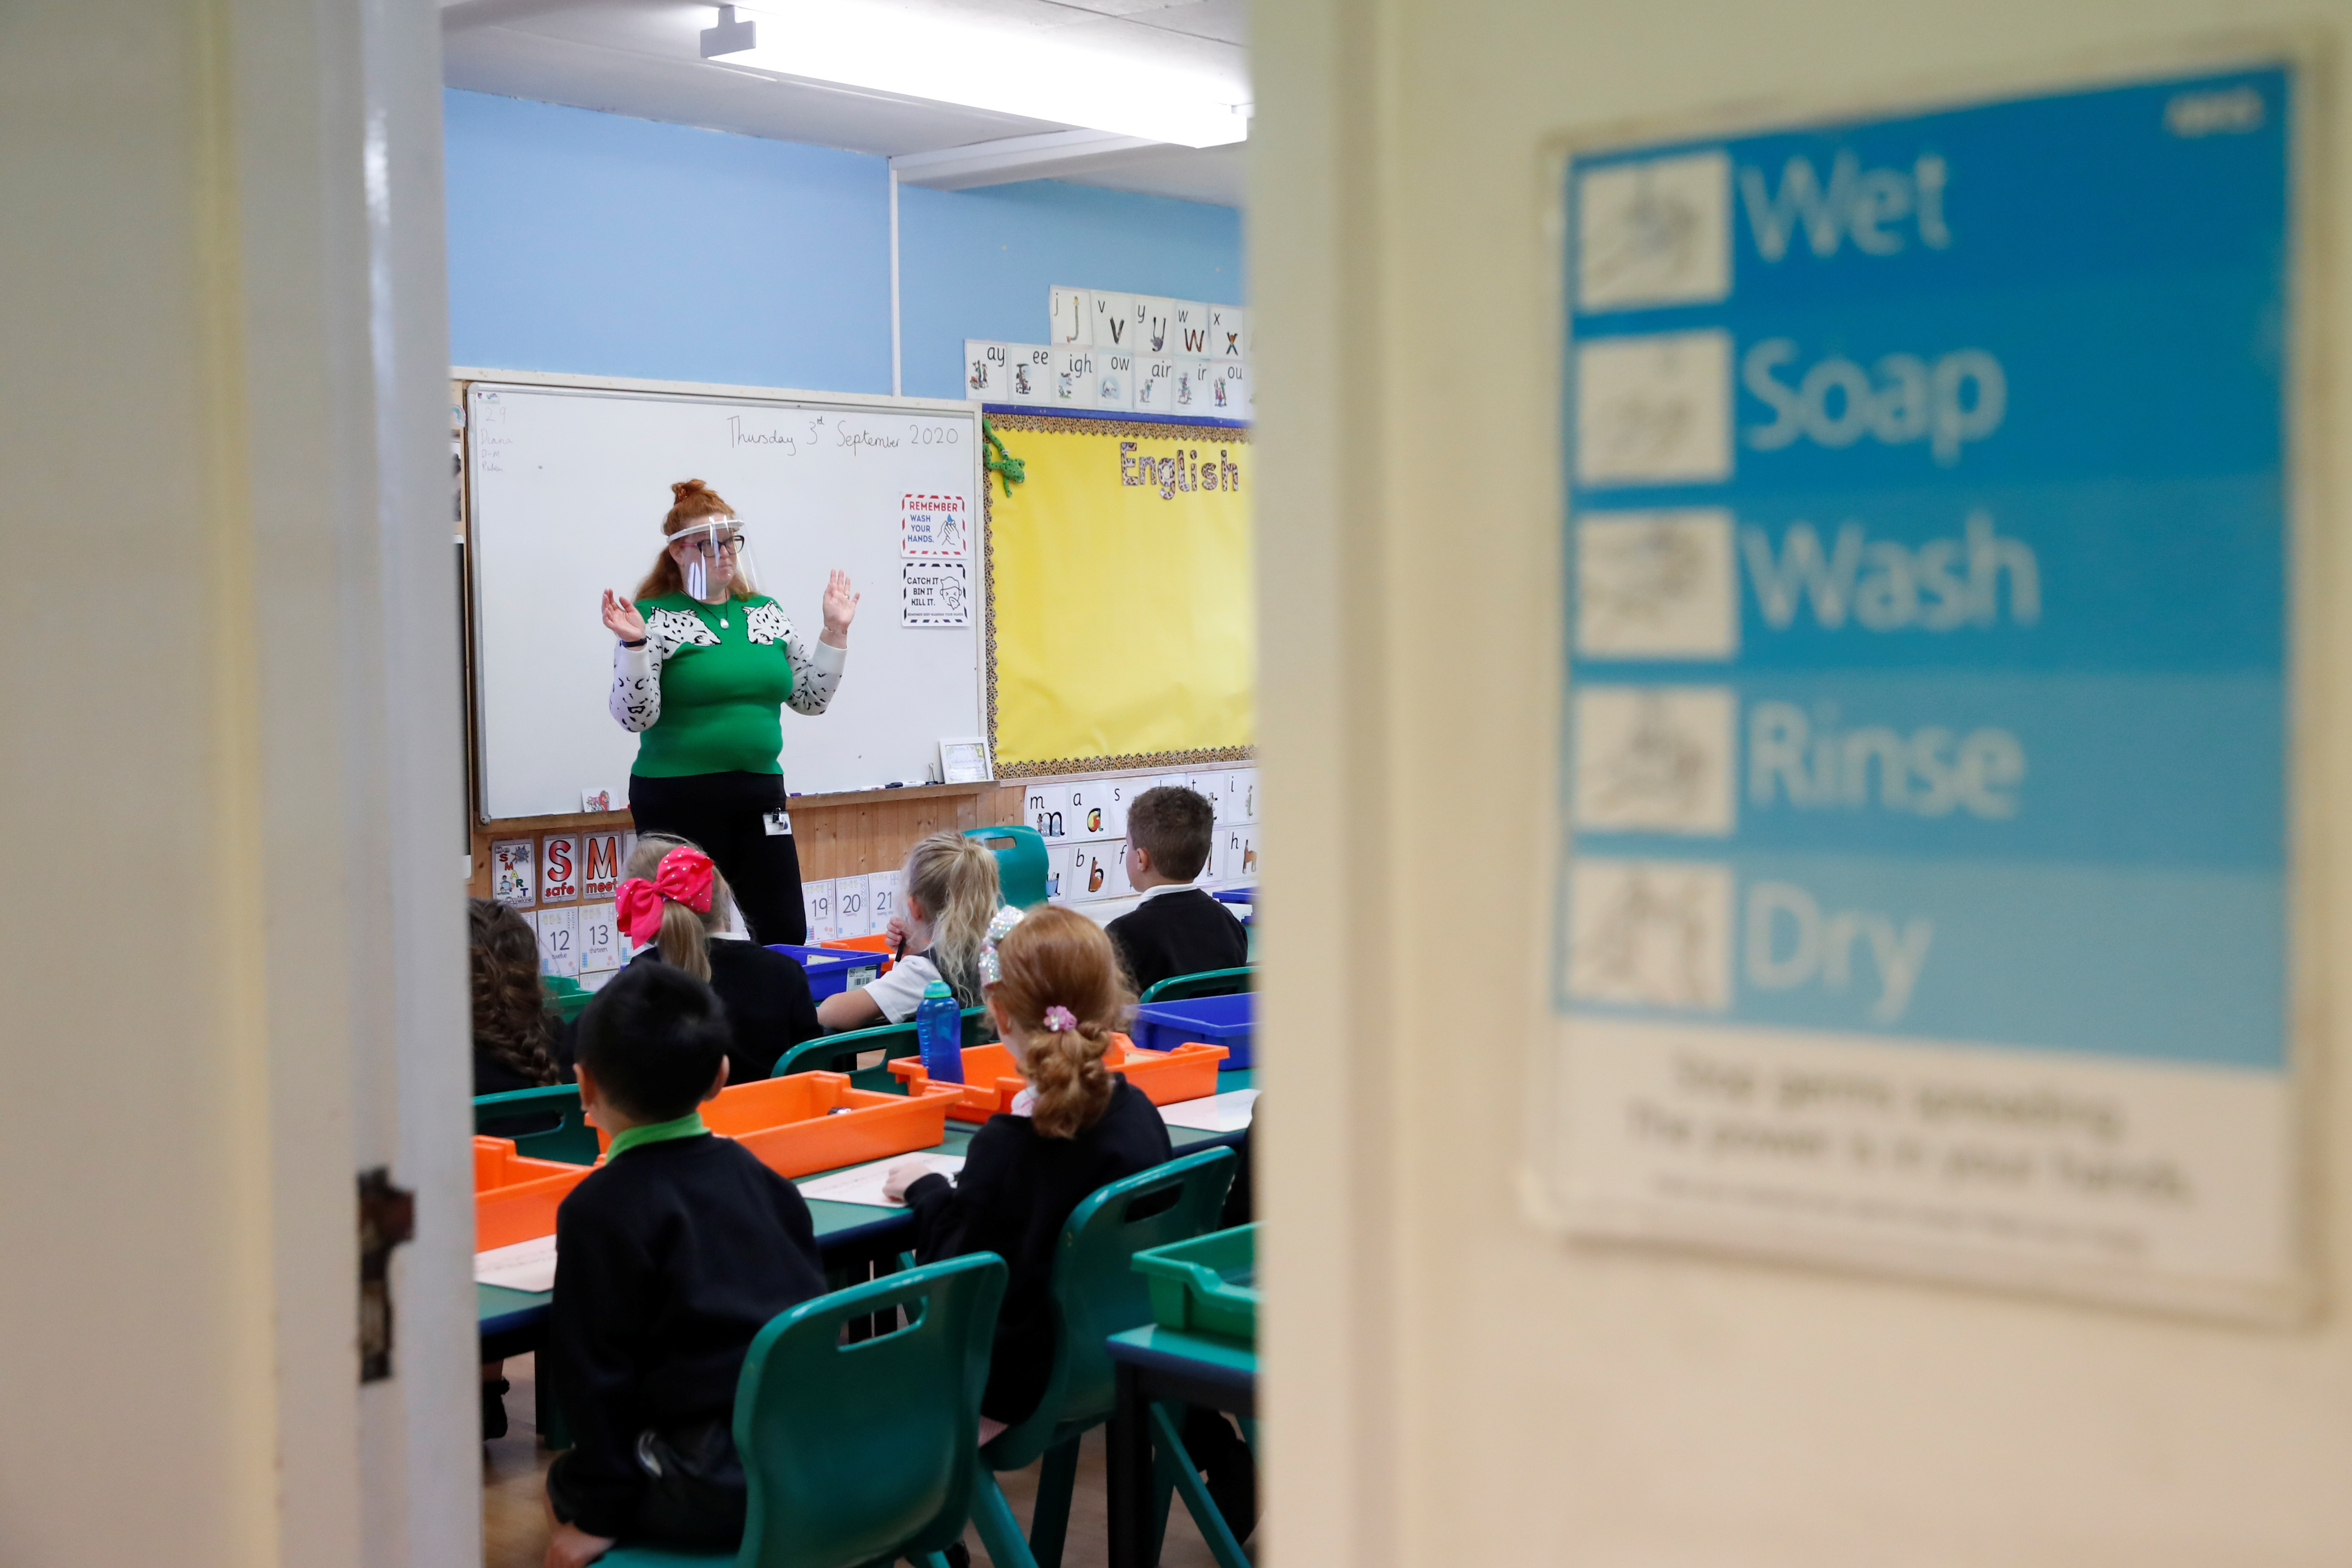 A hand washing advice is seen as a teacher wears a face shield on the first day of school at Holne Chase Primary School, amid the outbreak of the coronavirus disease (COVID-19), in Milton Keynes, Britain September 3, 2020. REUTERS/Andrew Boyers - RC20RI9B9KYB